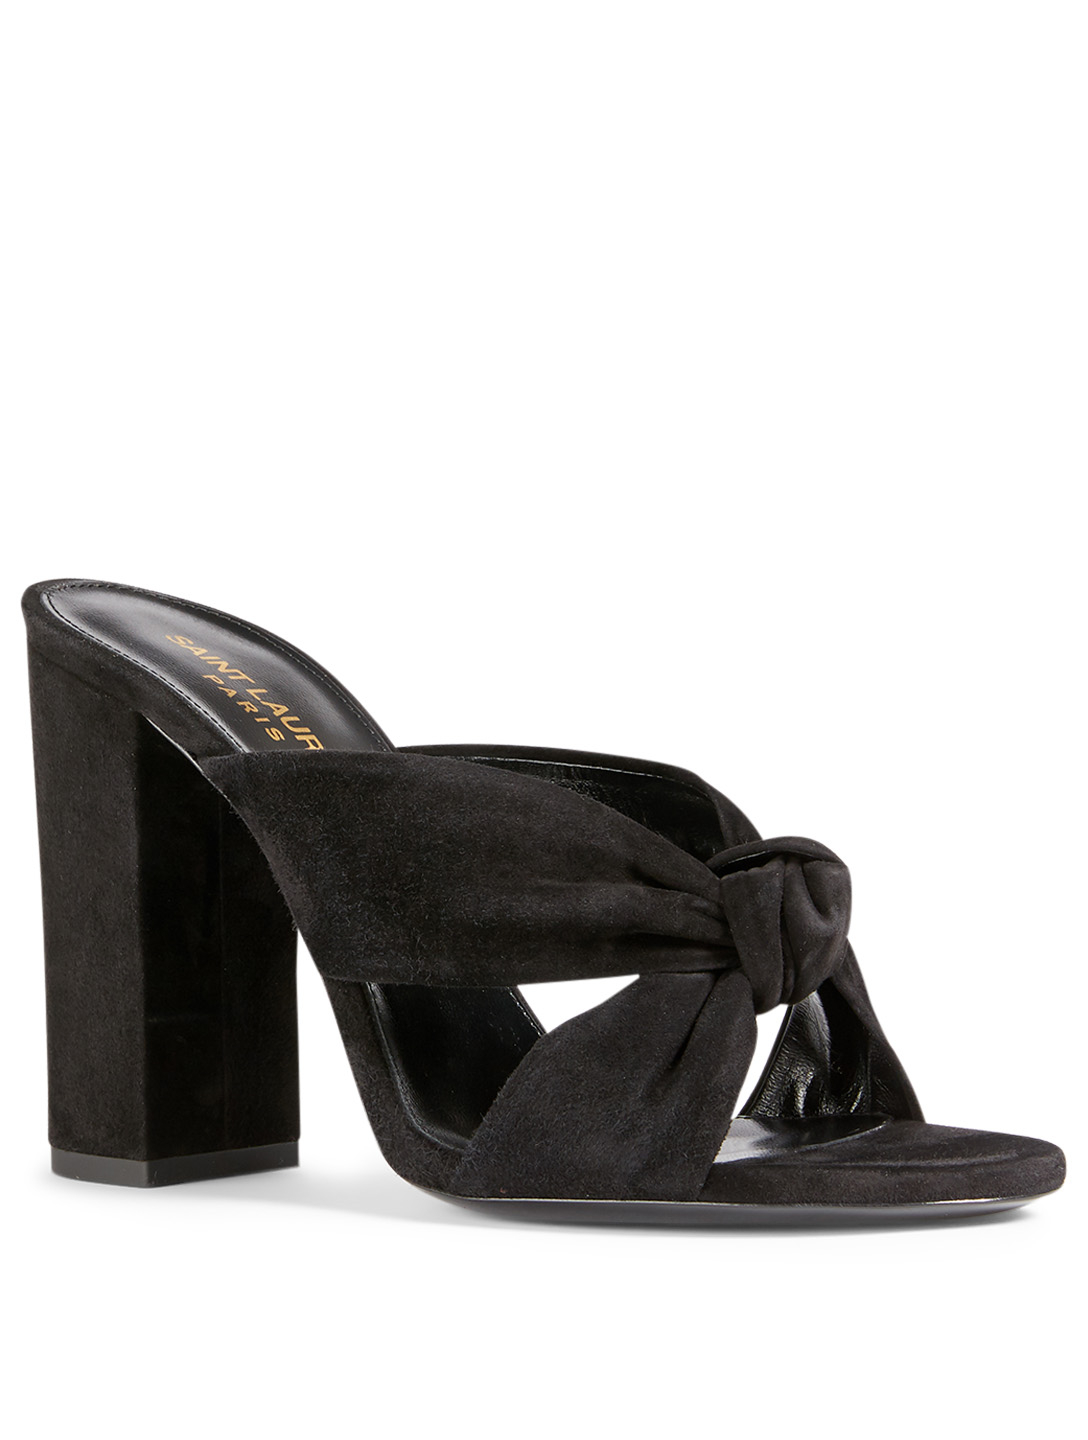 SAINT LAURENT LouLou Suede Heeled Mule Sandals Women's Black